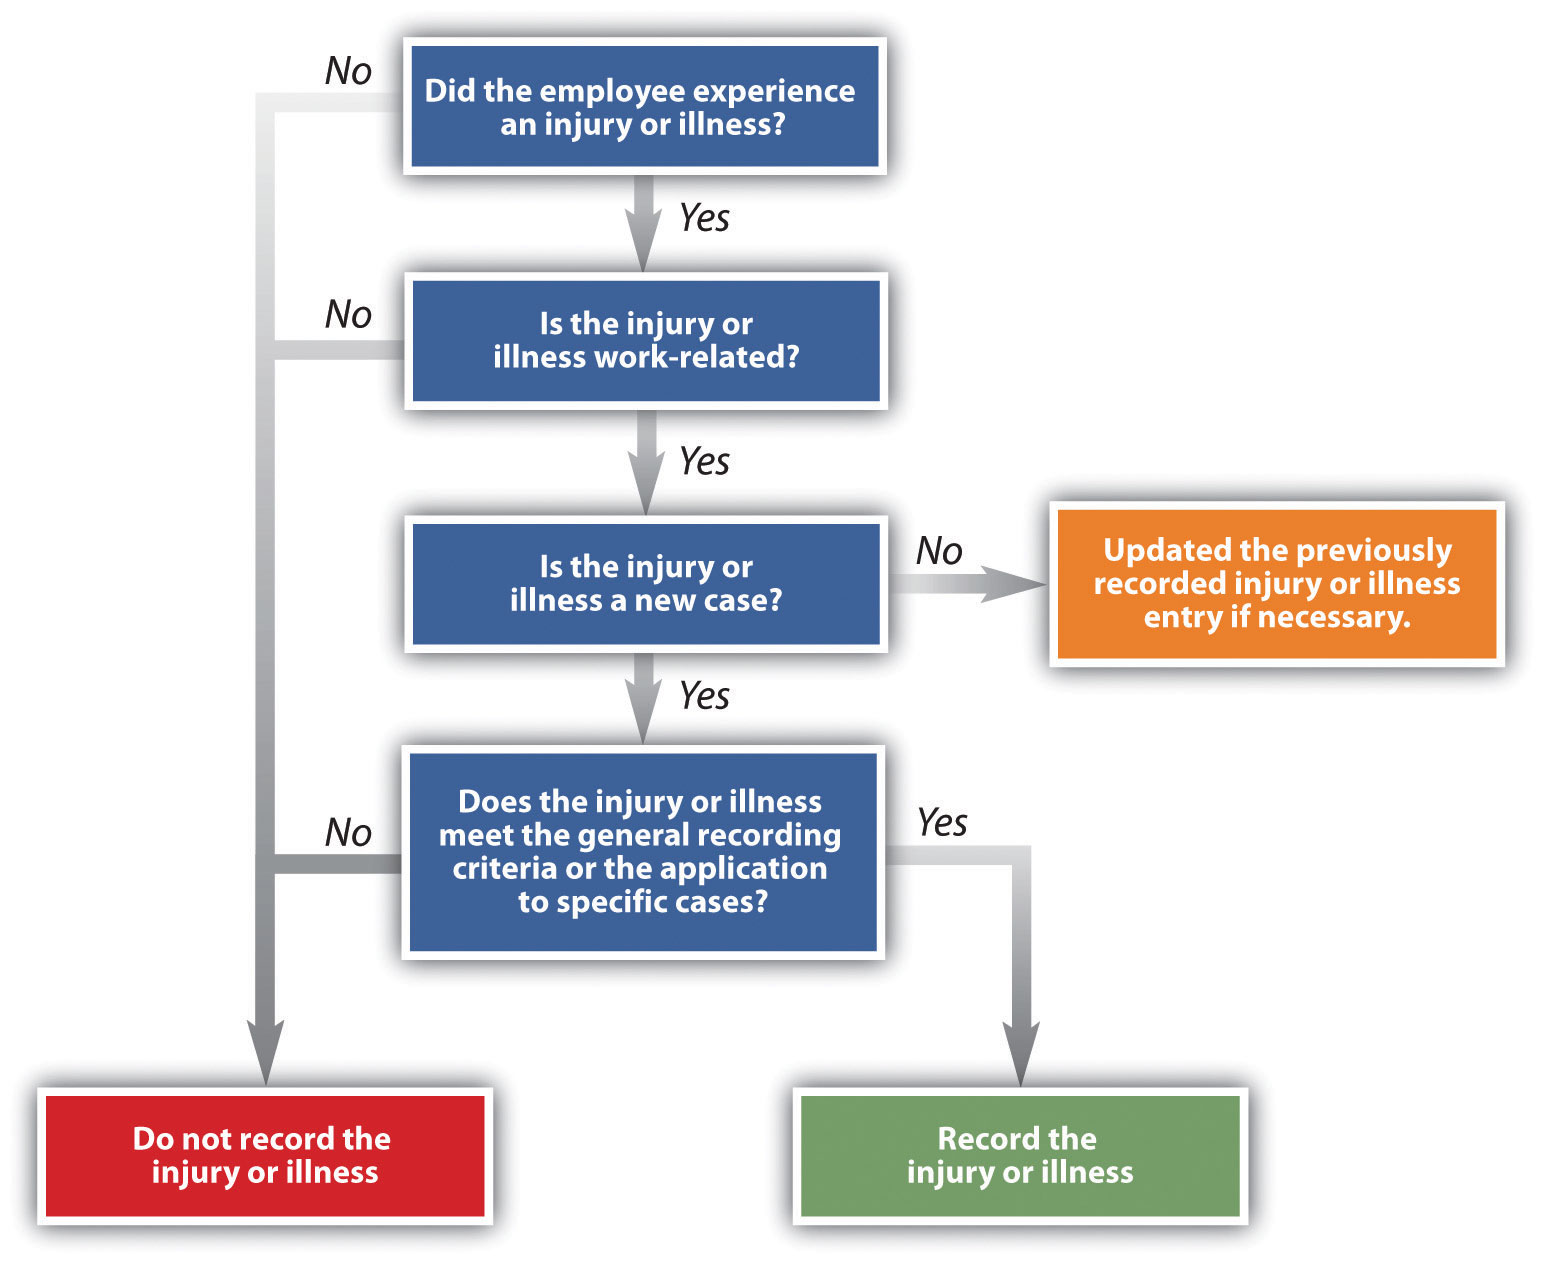 The OSHA Decision Tree for Determining If an Injury or Illness Should Be Recorded